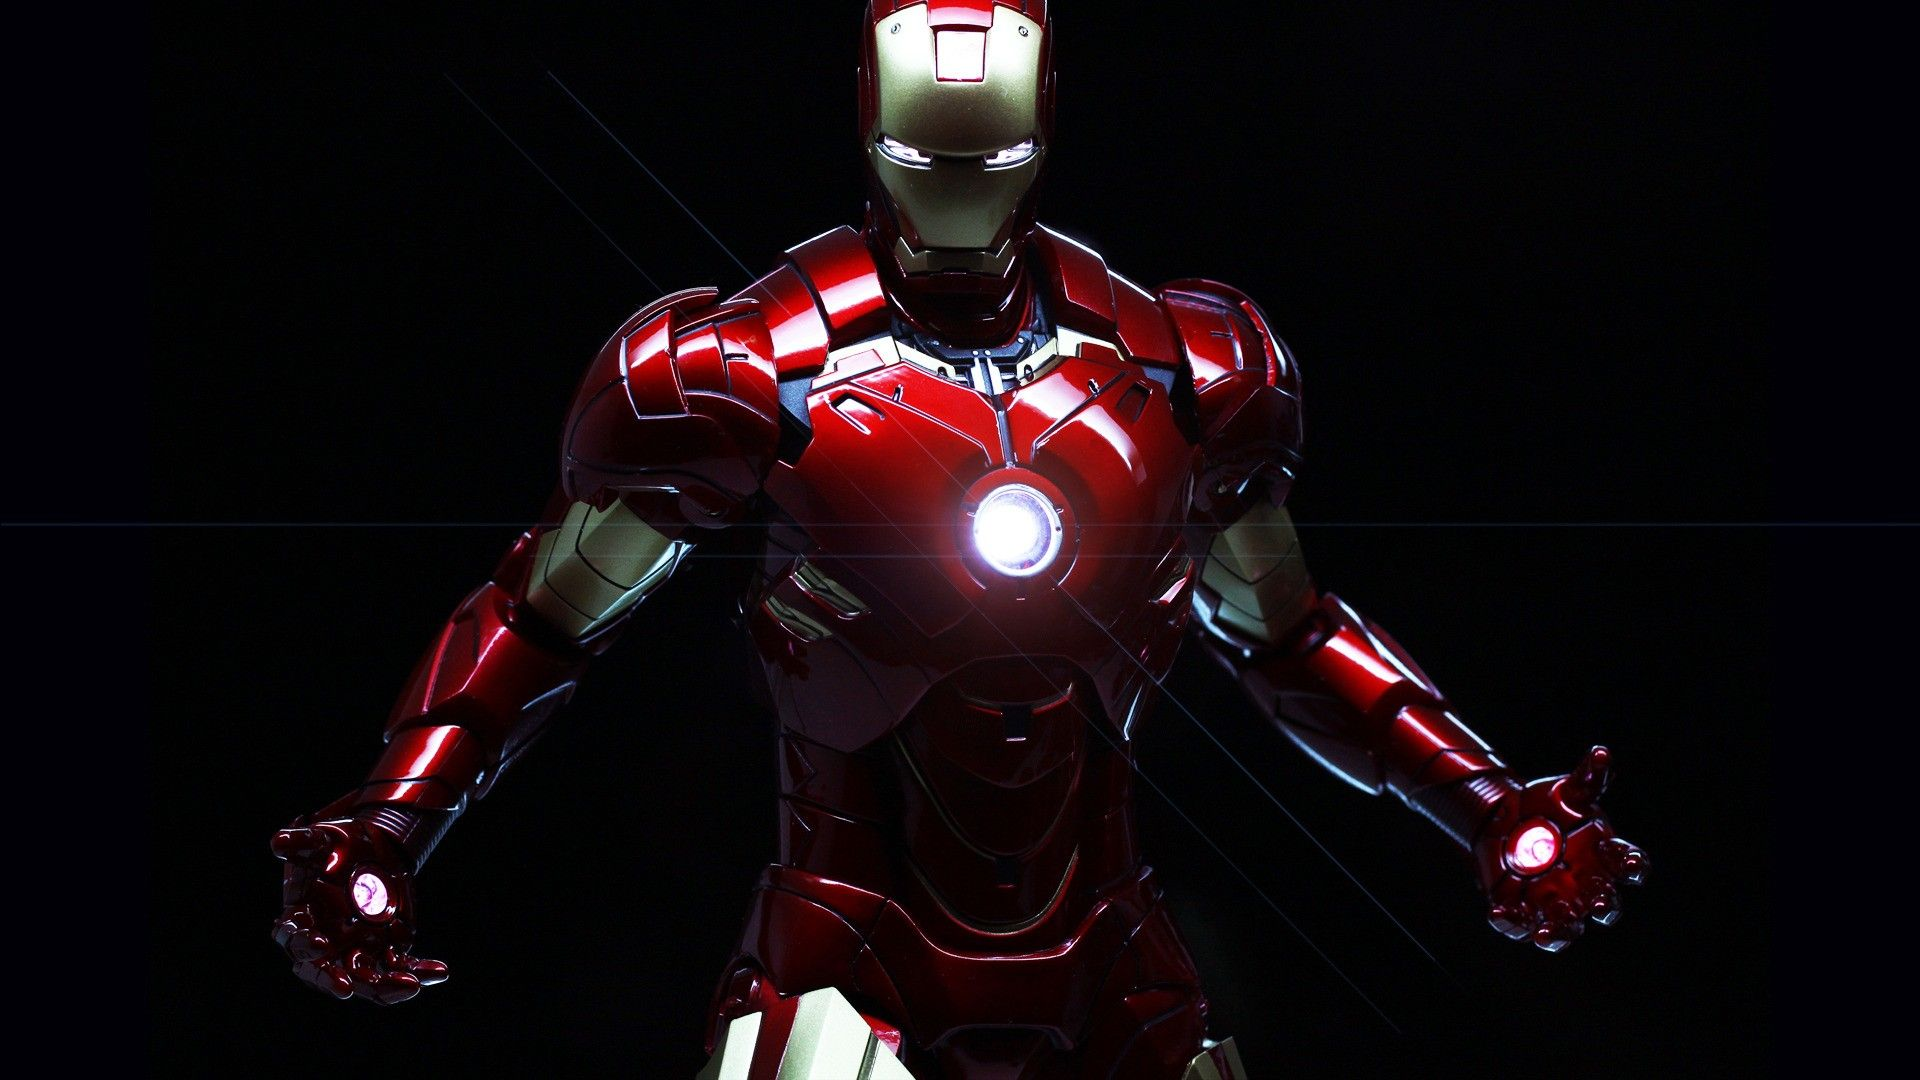 Iron Man Jarvis Backgrounds Is Cool Wallpapers